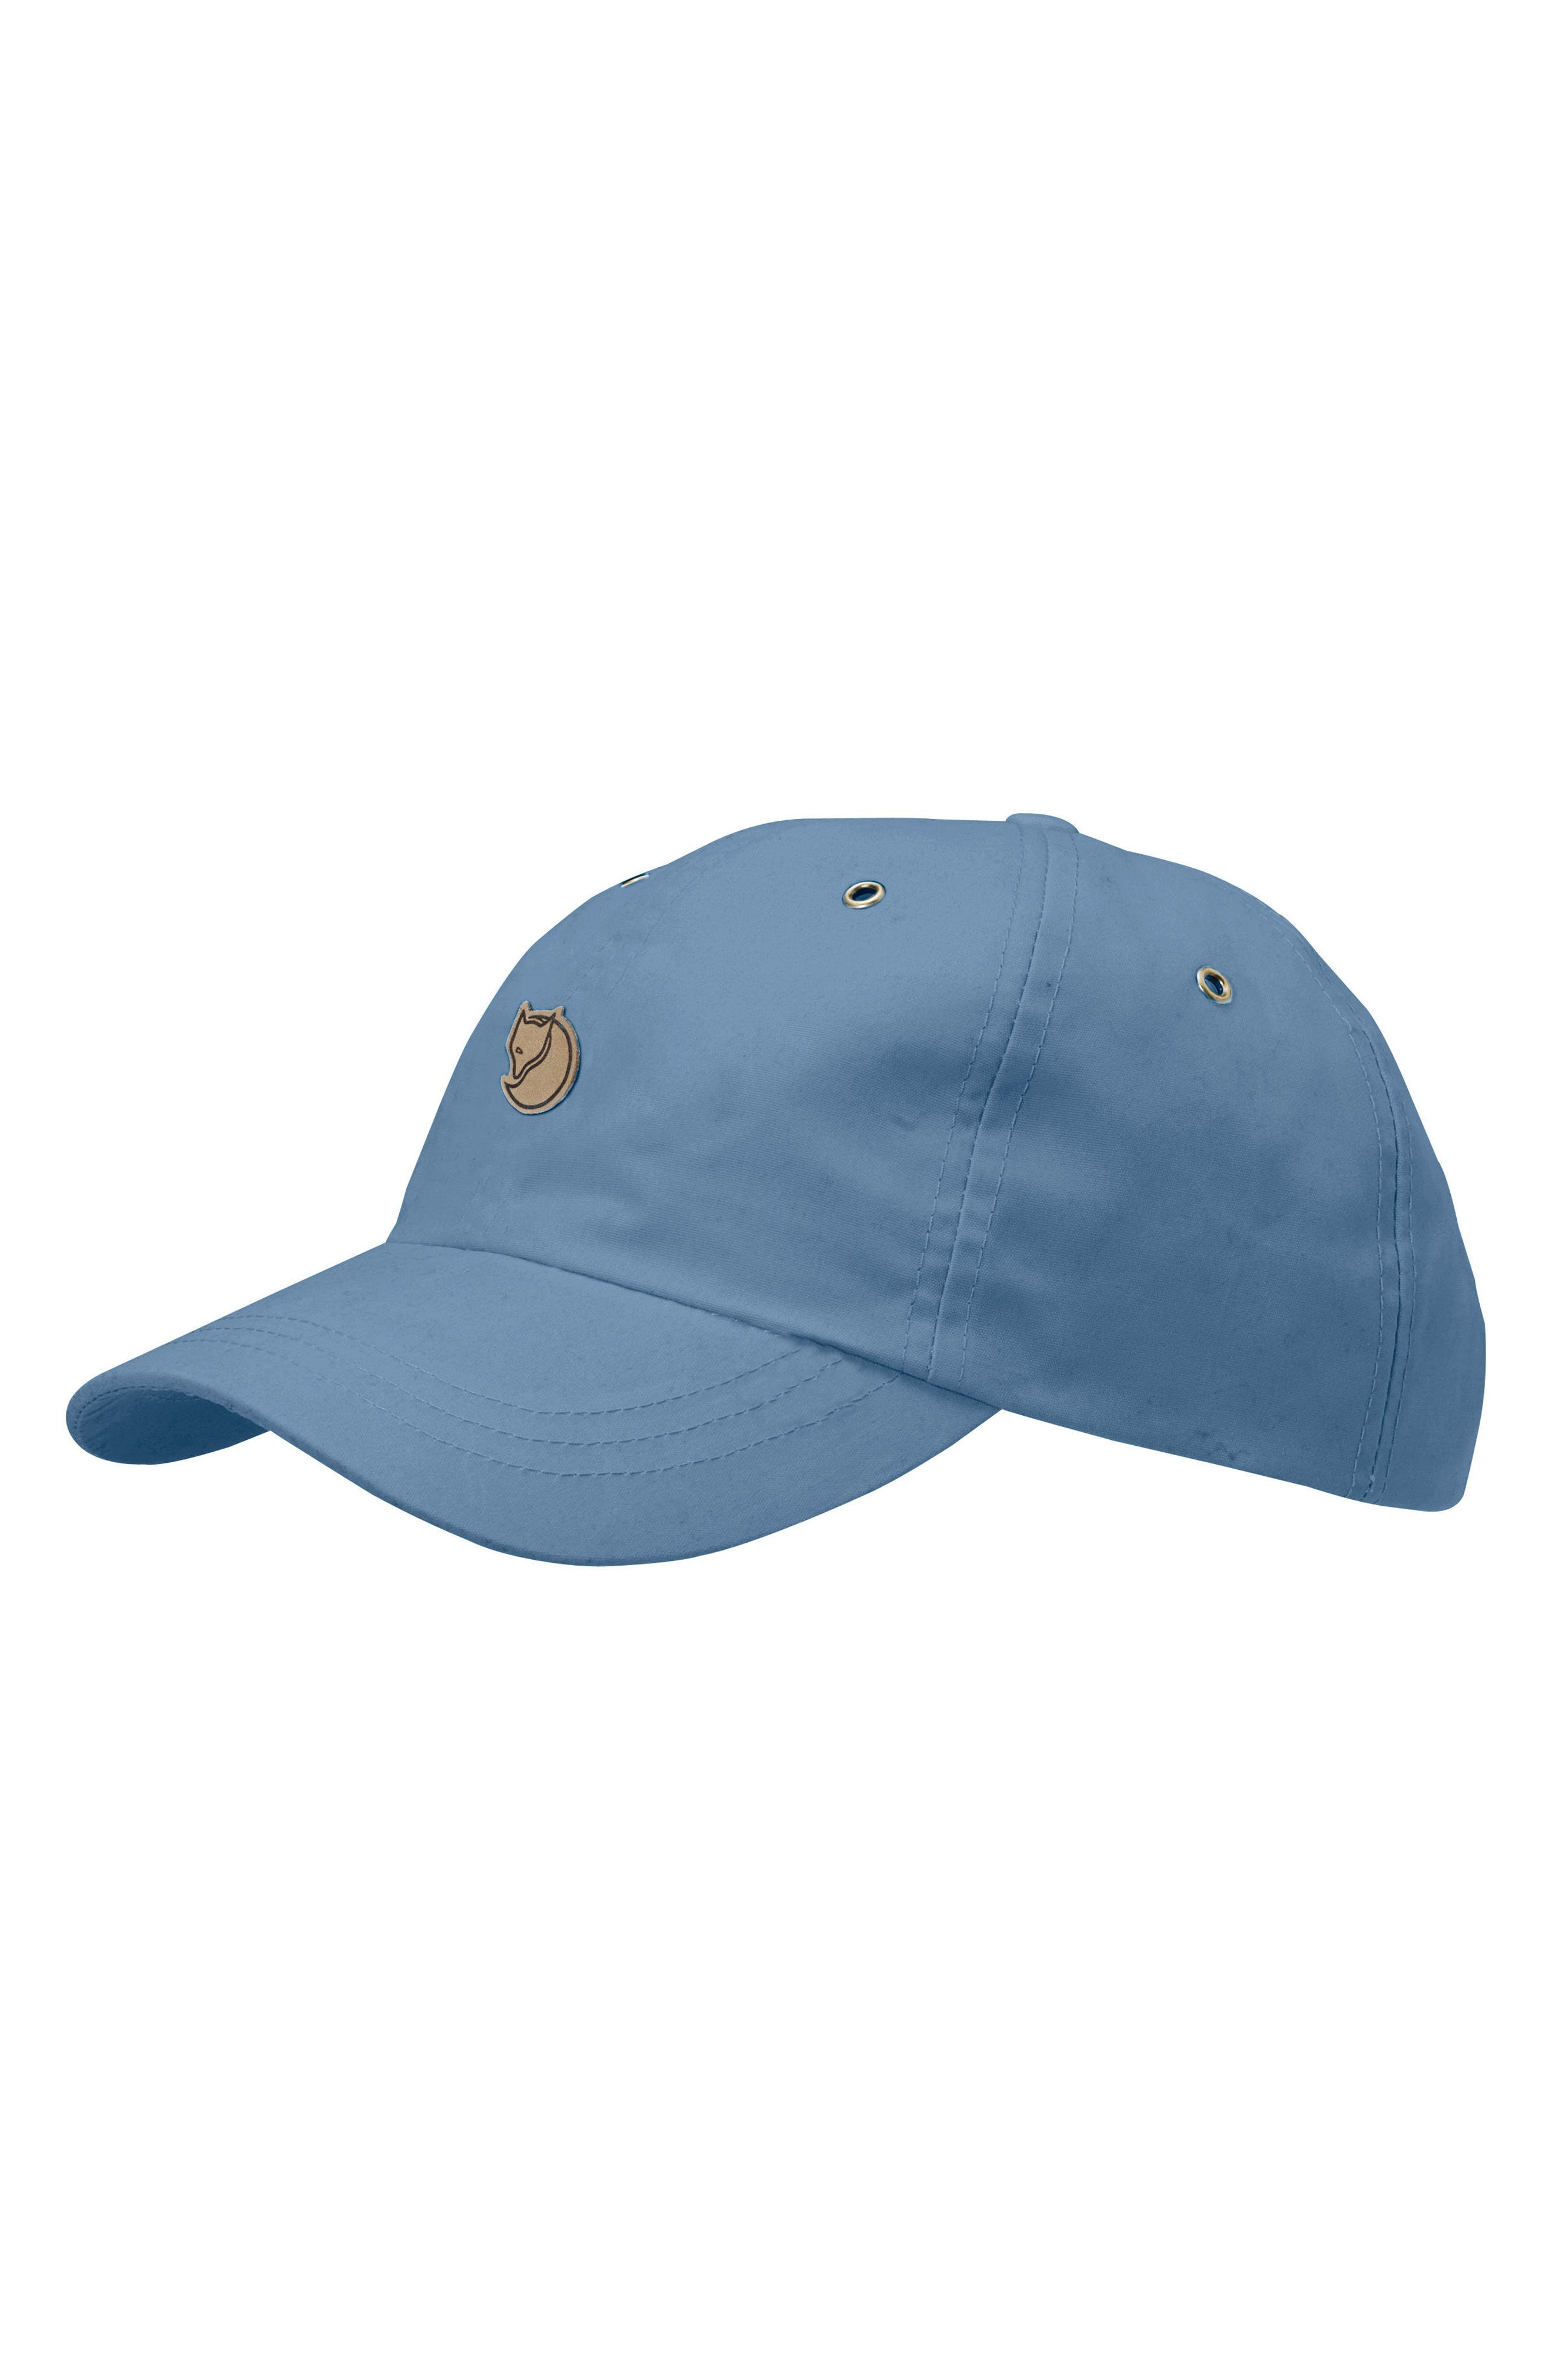 Helags Ball Cap,                             Main thumbnail 1, color,                             BLUE RIDGE